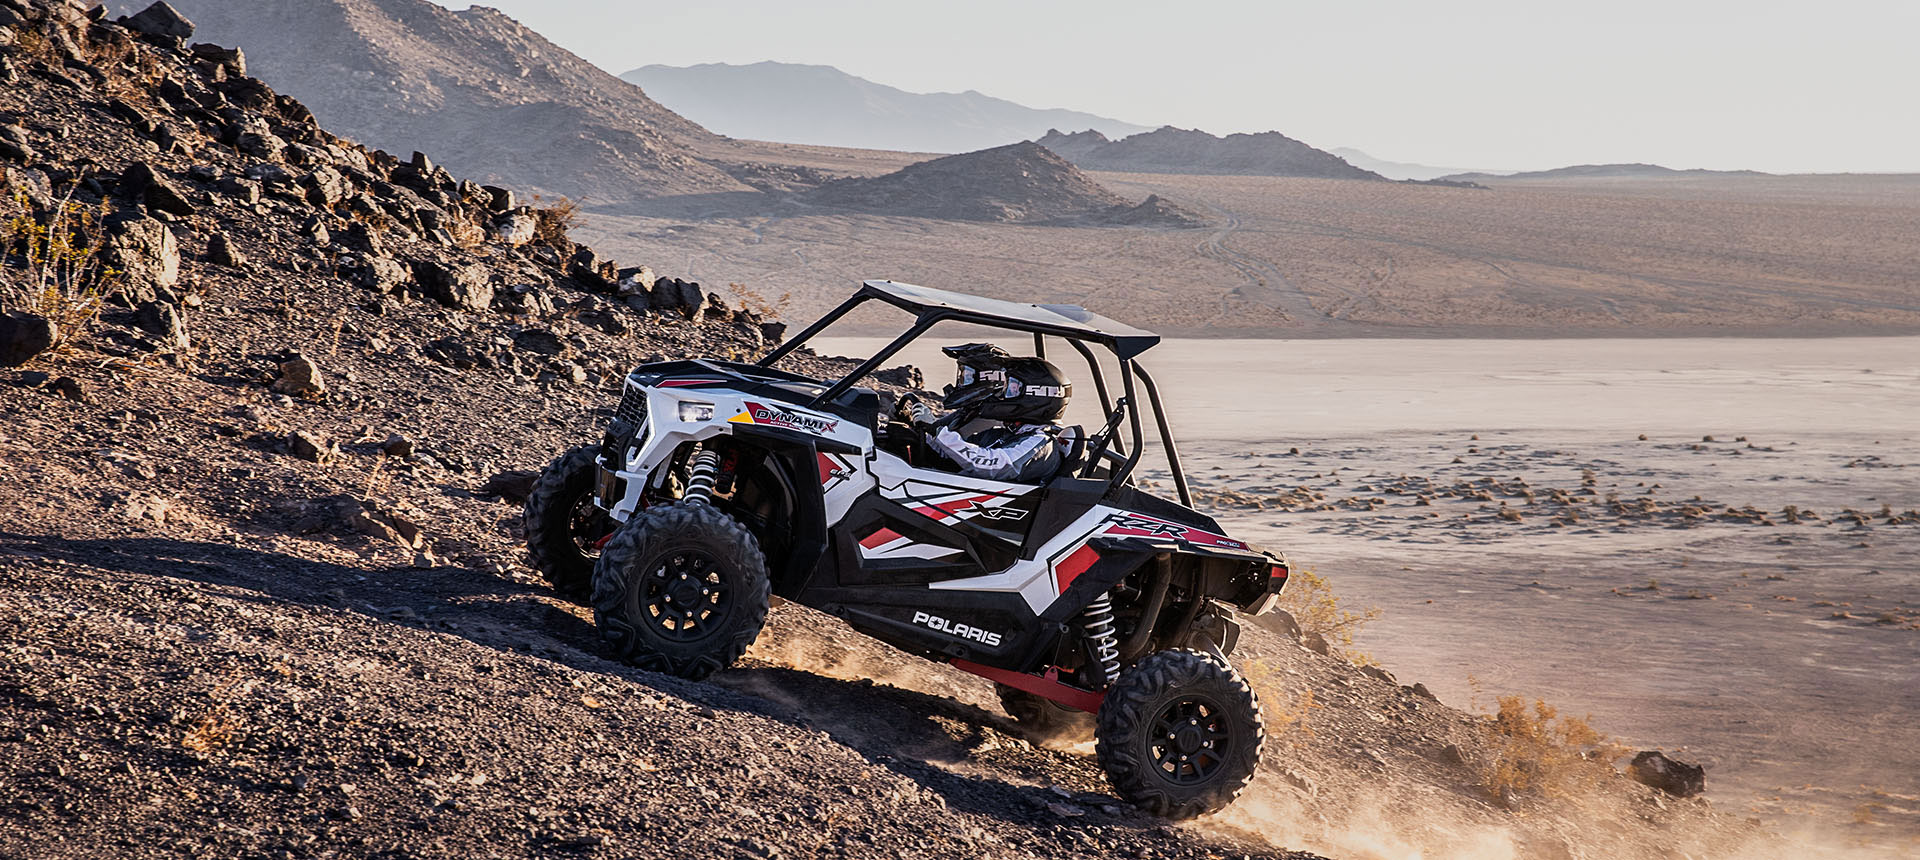 2019 Polaris RZR XP 1000 in Freeport, Florida - Photo 5